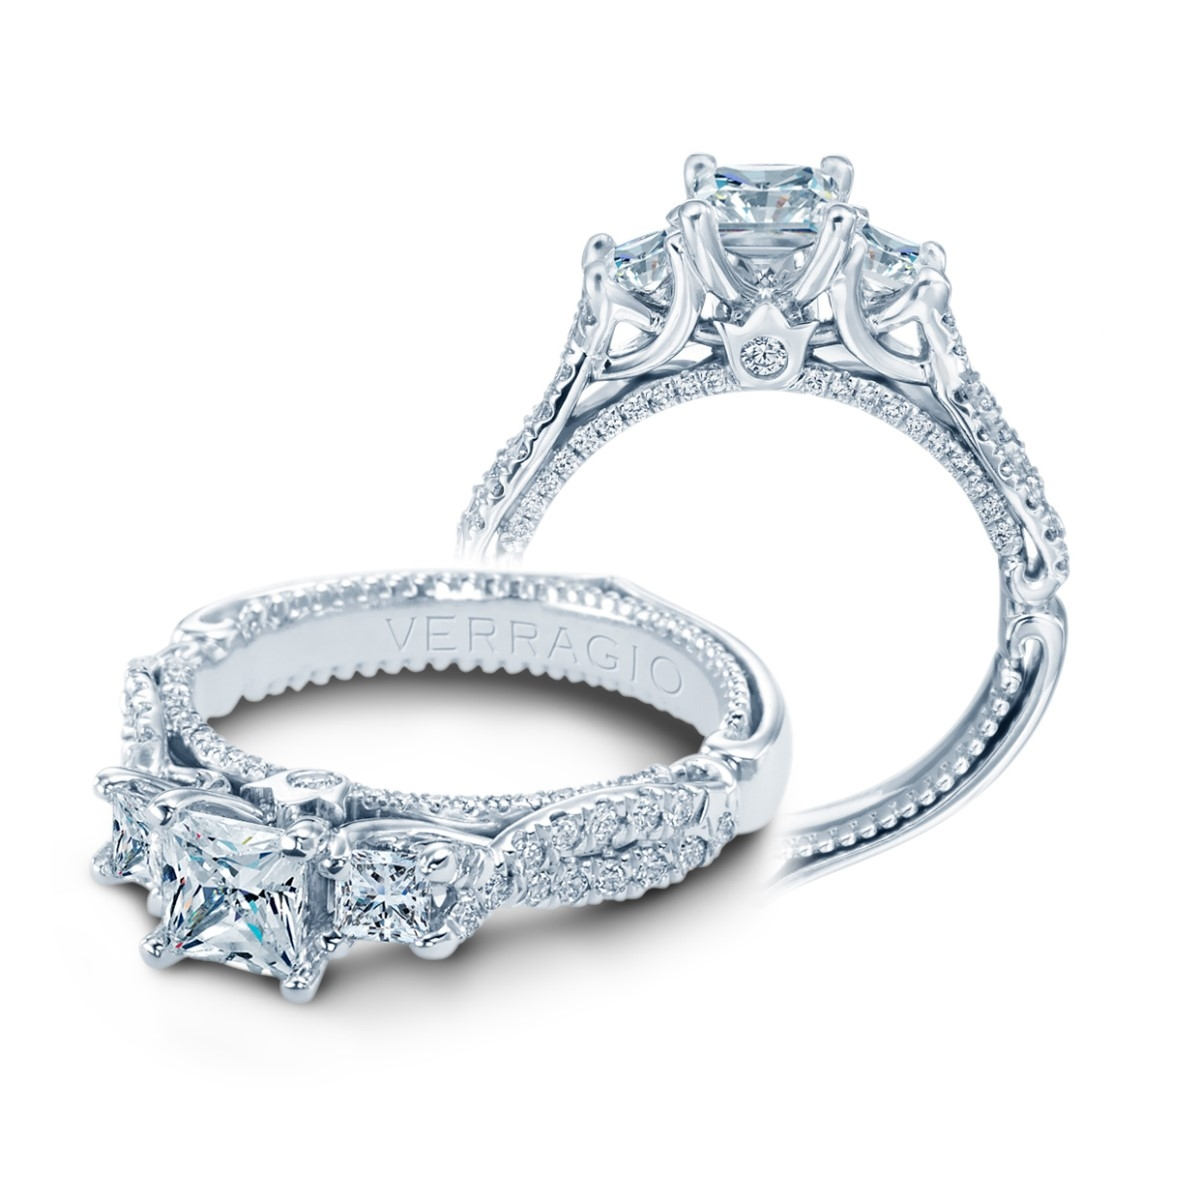 Verragio Couture-0475P 14 Karat Engagement Ring